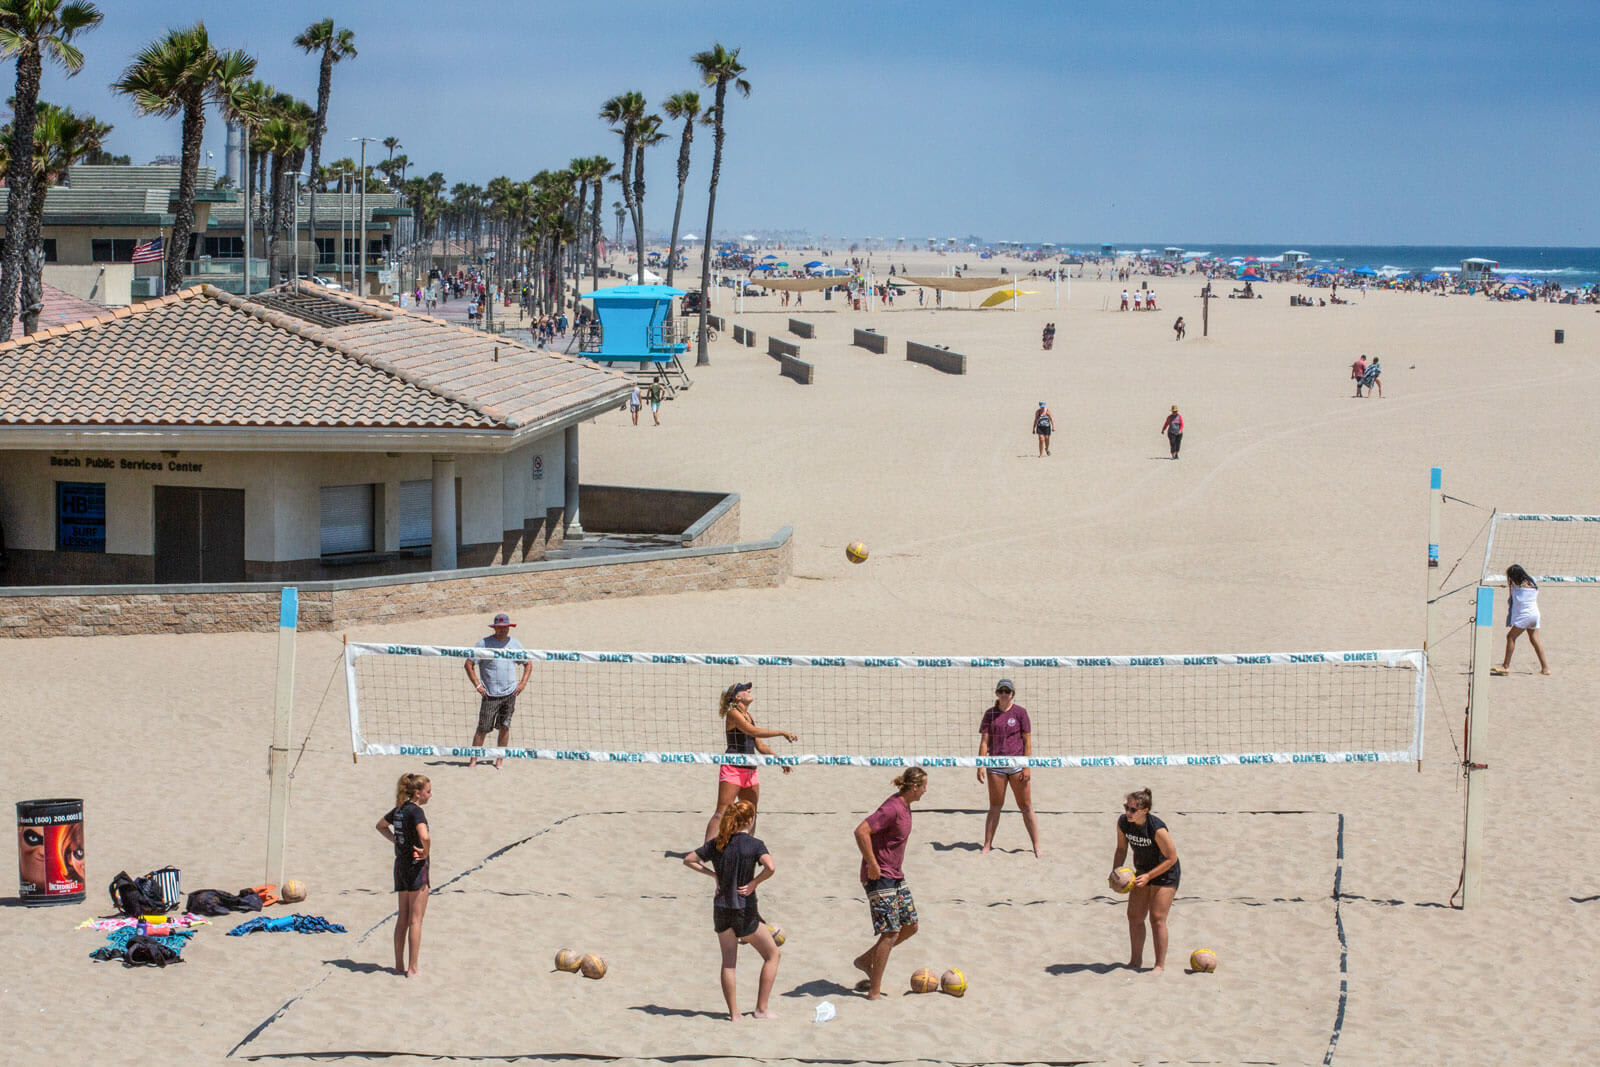 Beach Volleyball Courts near Boardwalk by Windsor, California, 92647